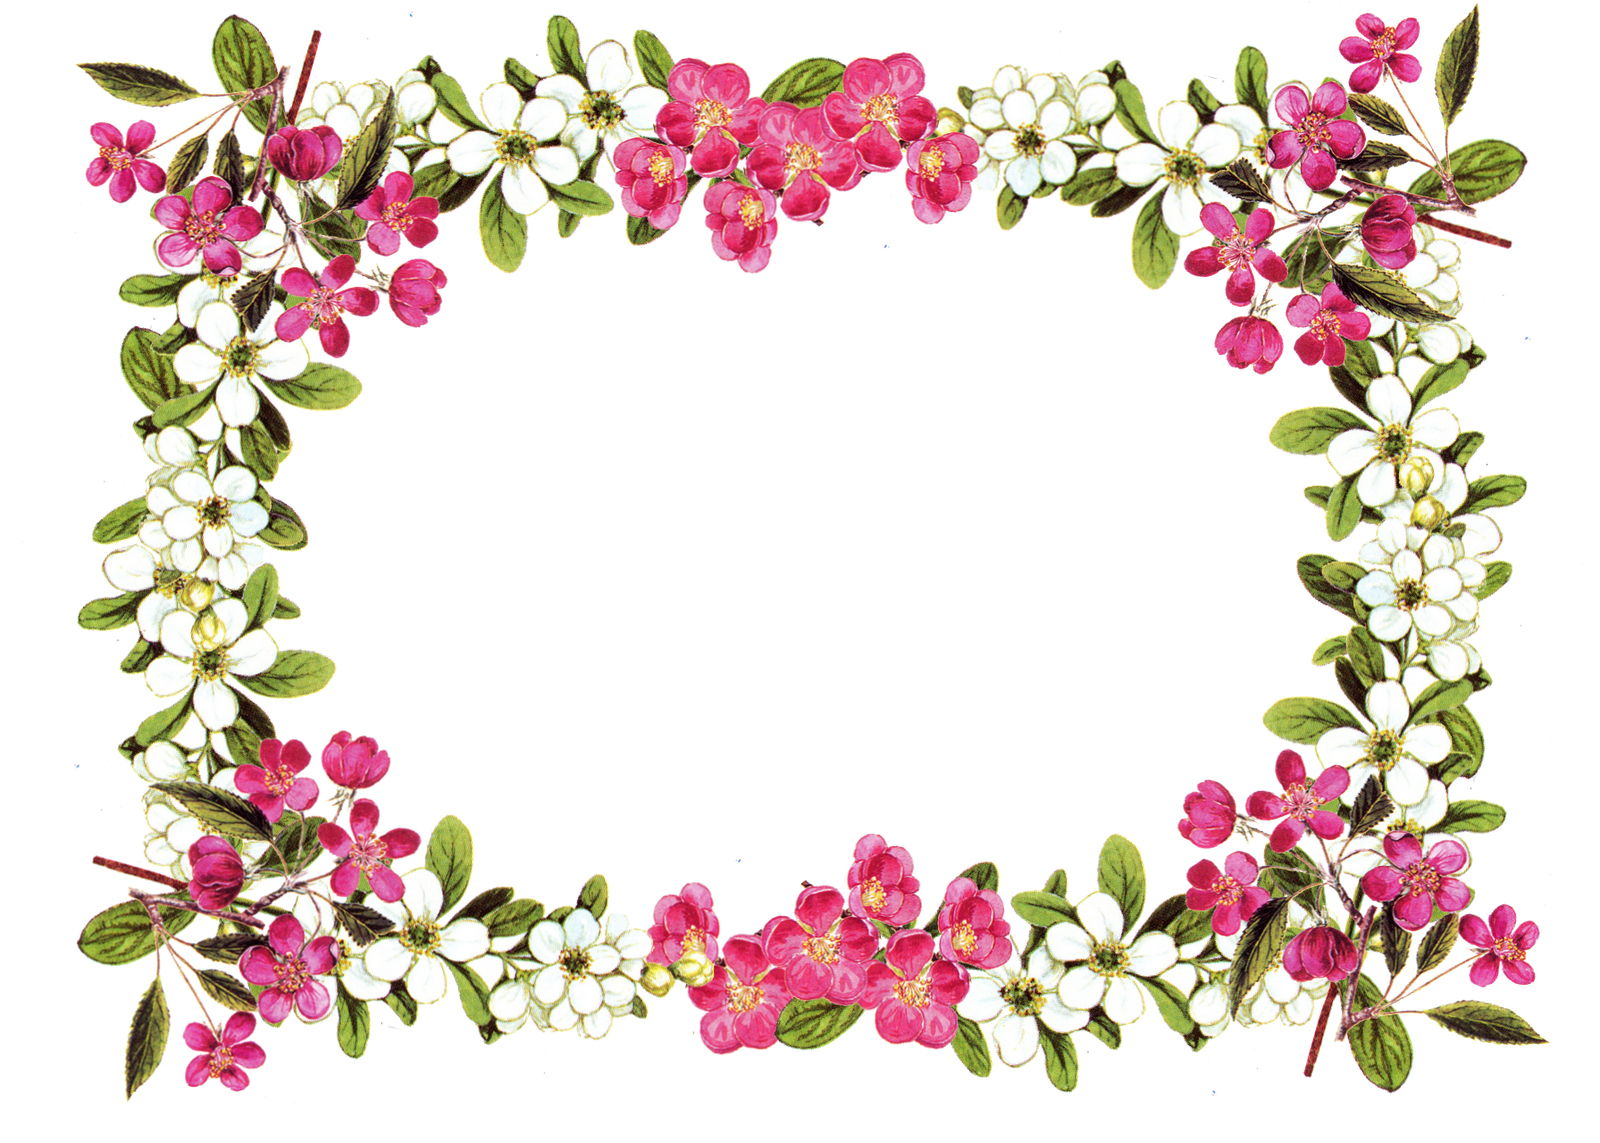 pin by adele gilmore on wow pinterest borders free flower frame rh pinterest com flower border clip art flower border clip art images